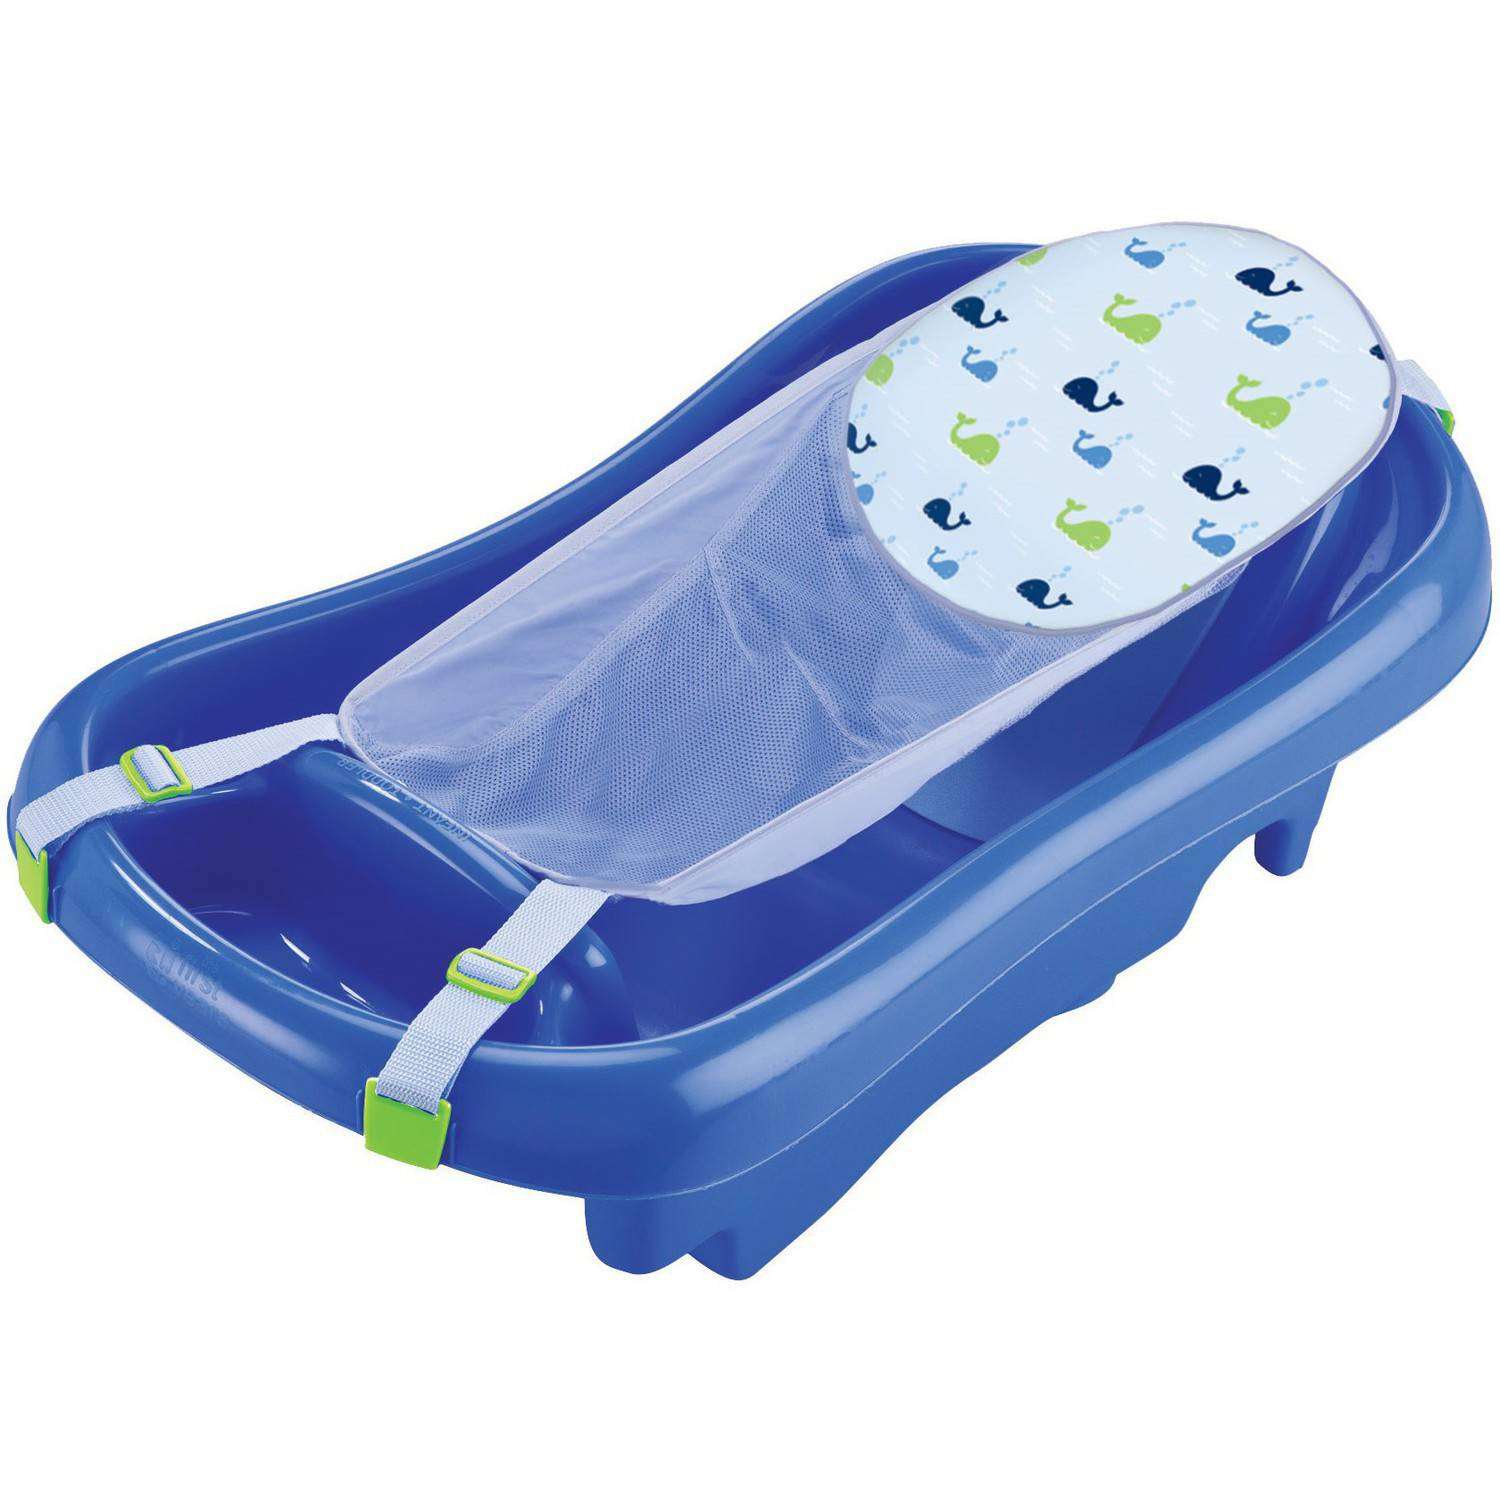 Baby bath chair walmart - The First Years Sure Comfort Deluxe Newborn To Toddler Tub With Sling Blue Walmart Com